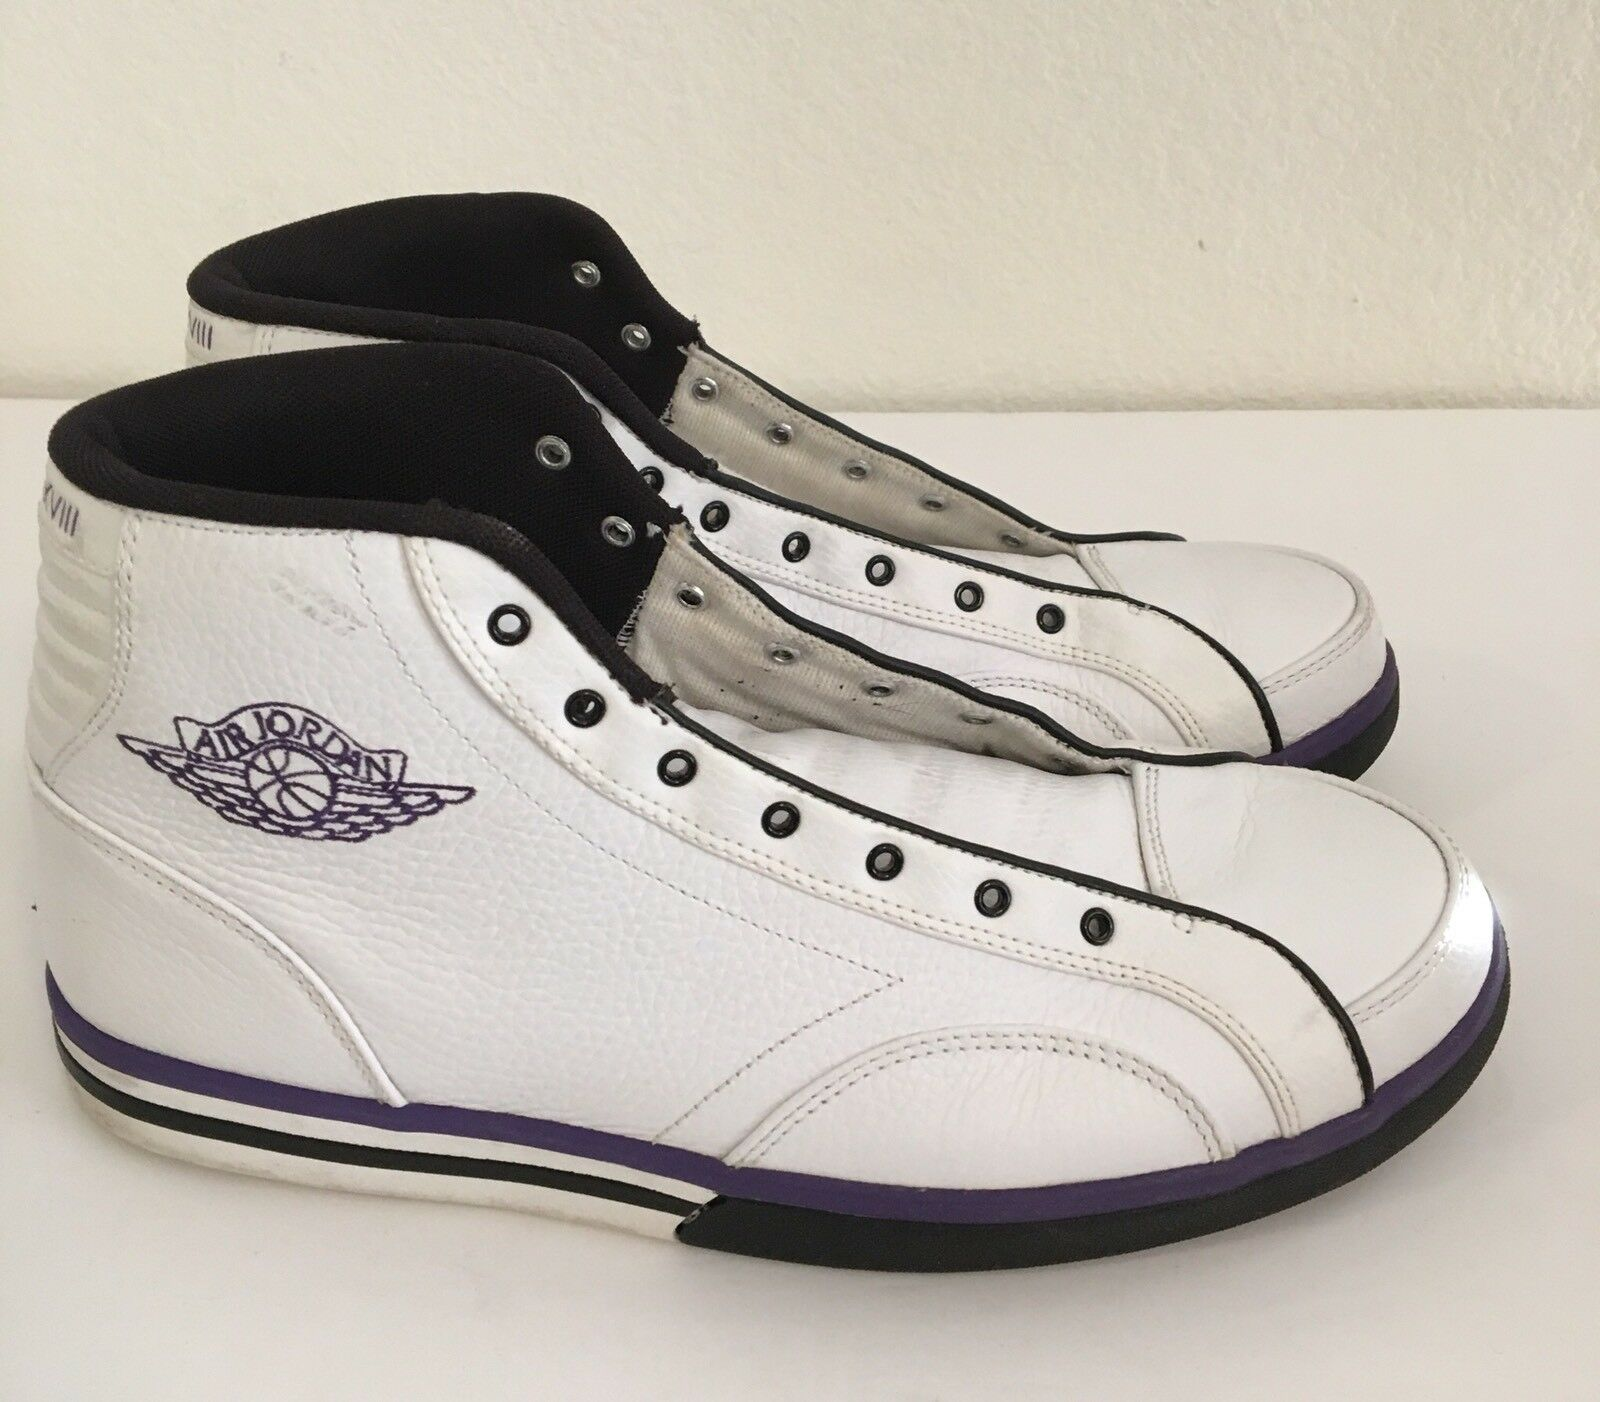 Nike Air Jordan Phly Legend MCMLXXVIII White Purple Trim Men's SZ 11M 2008 RARE